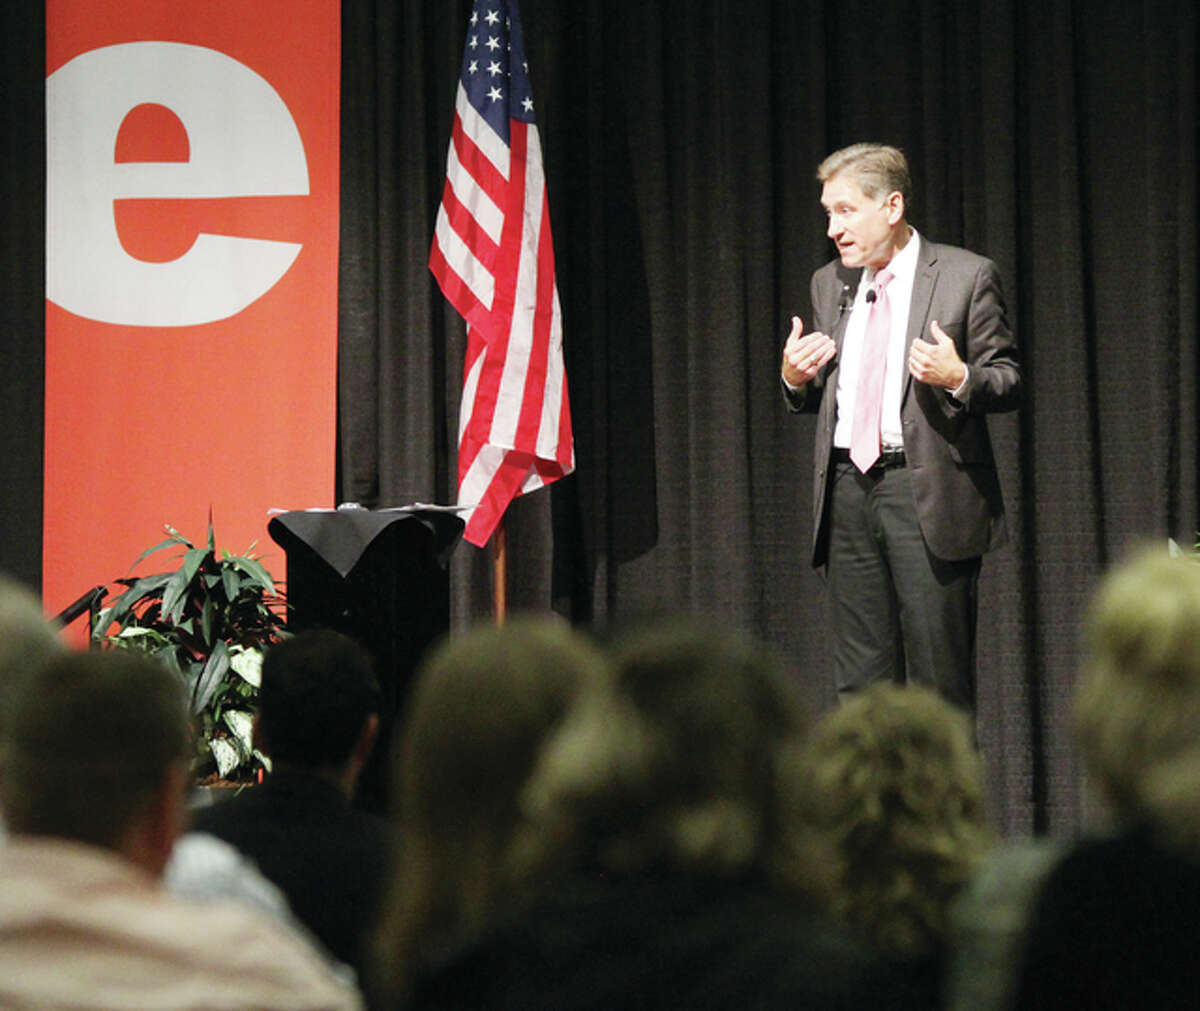 """SIU President Randy Dunn gives his """"State of the System"""" speech Tuesday at the Edwardsville campus. He focused on the need to think strategically about the future. About 250 faculty, staff and others came out to listen to Dunn's talk."""